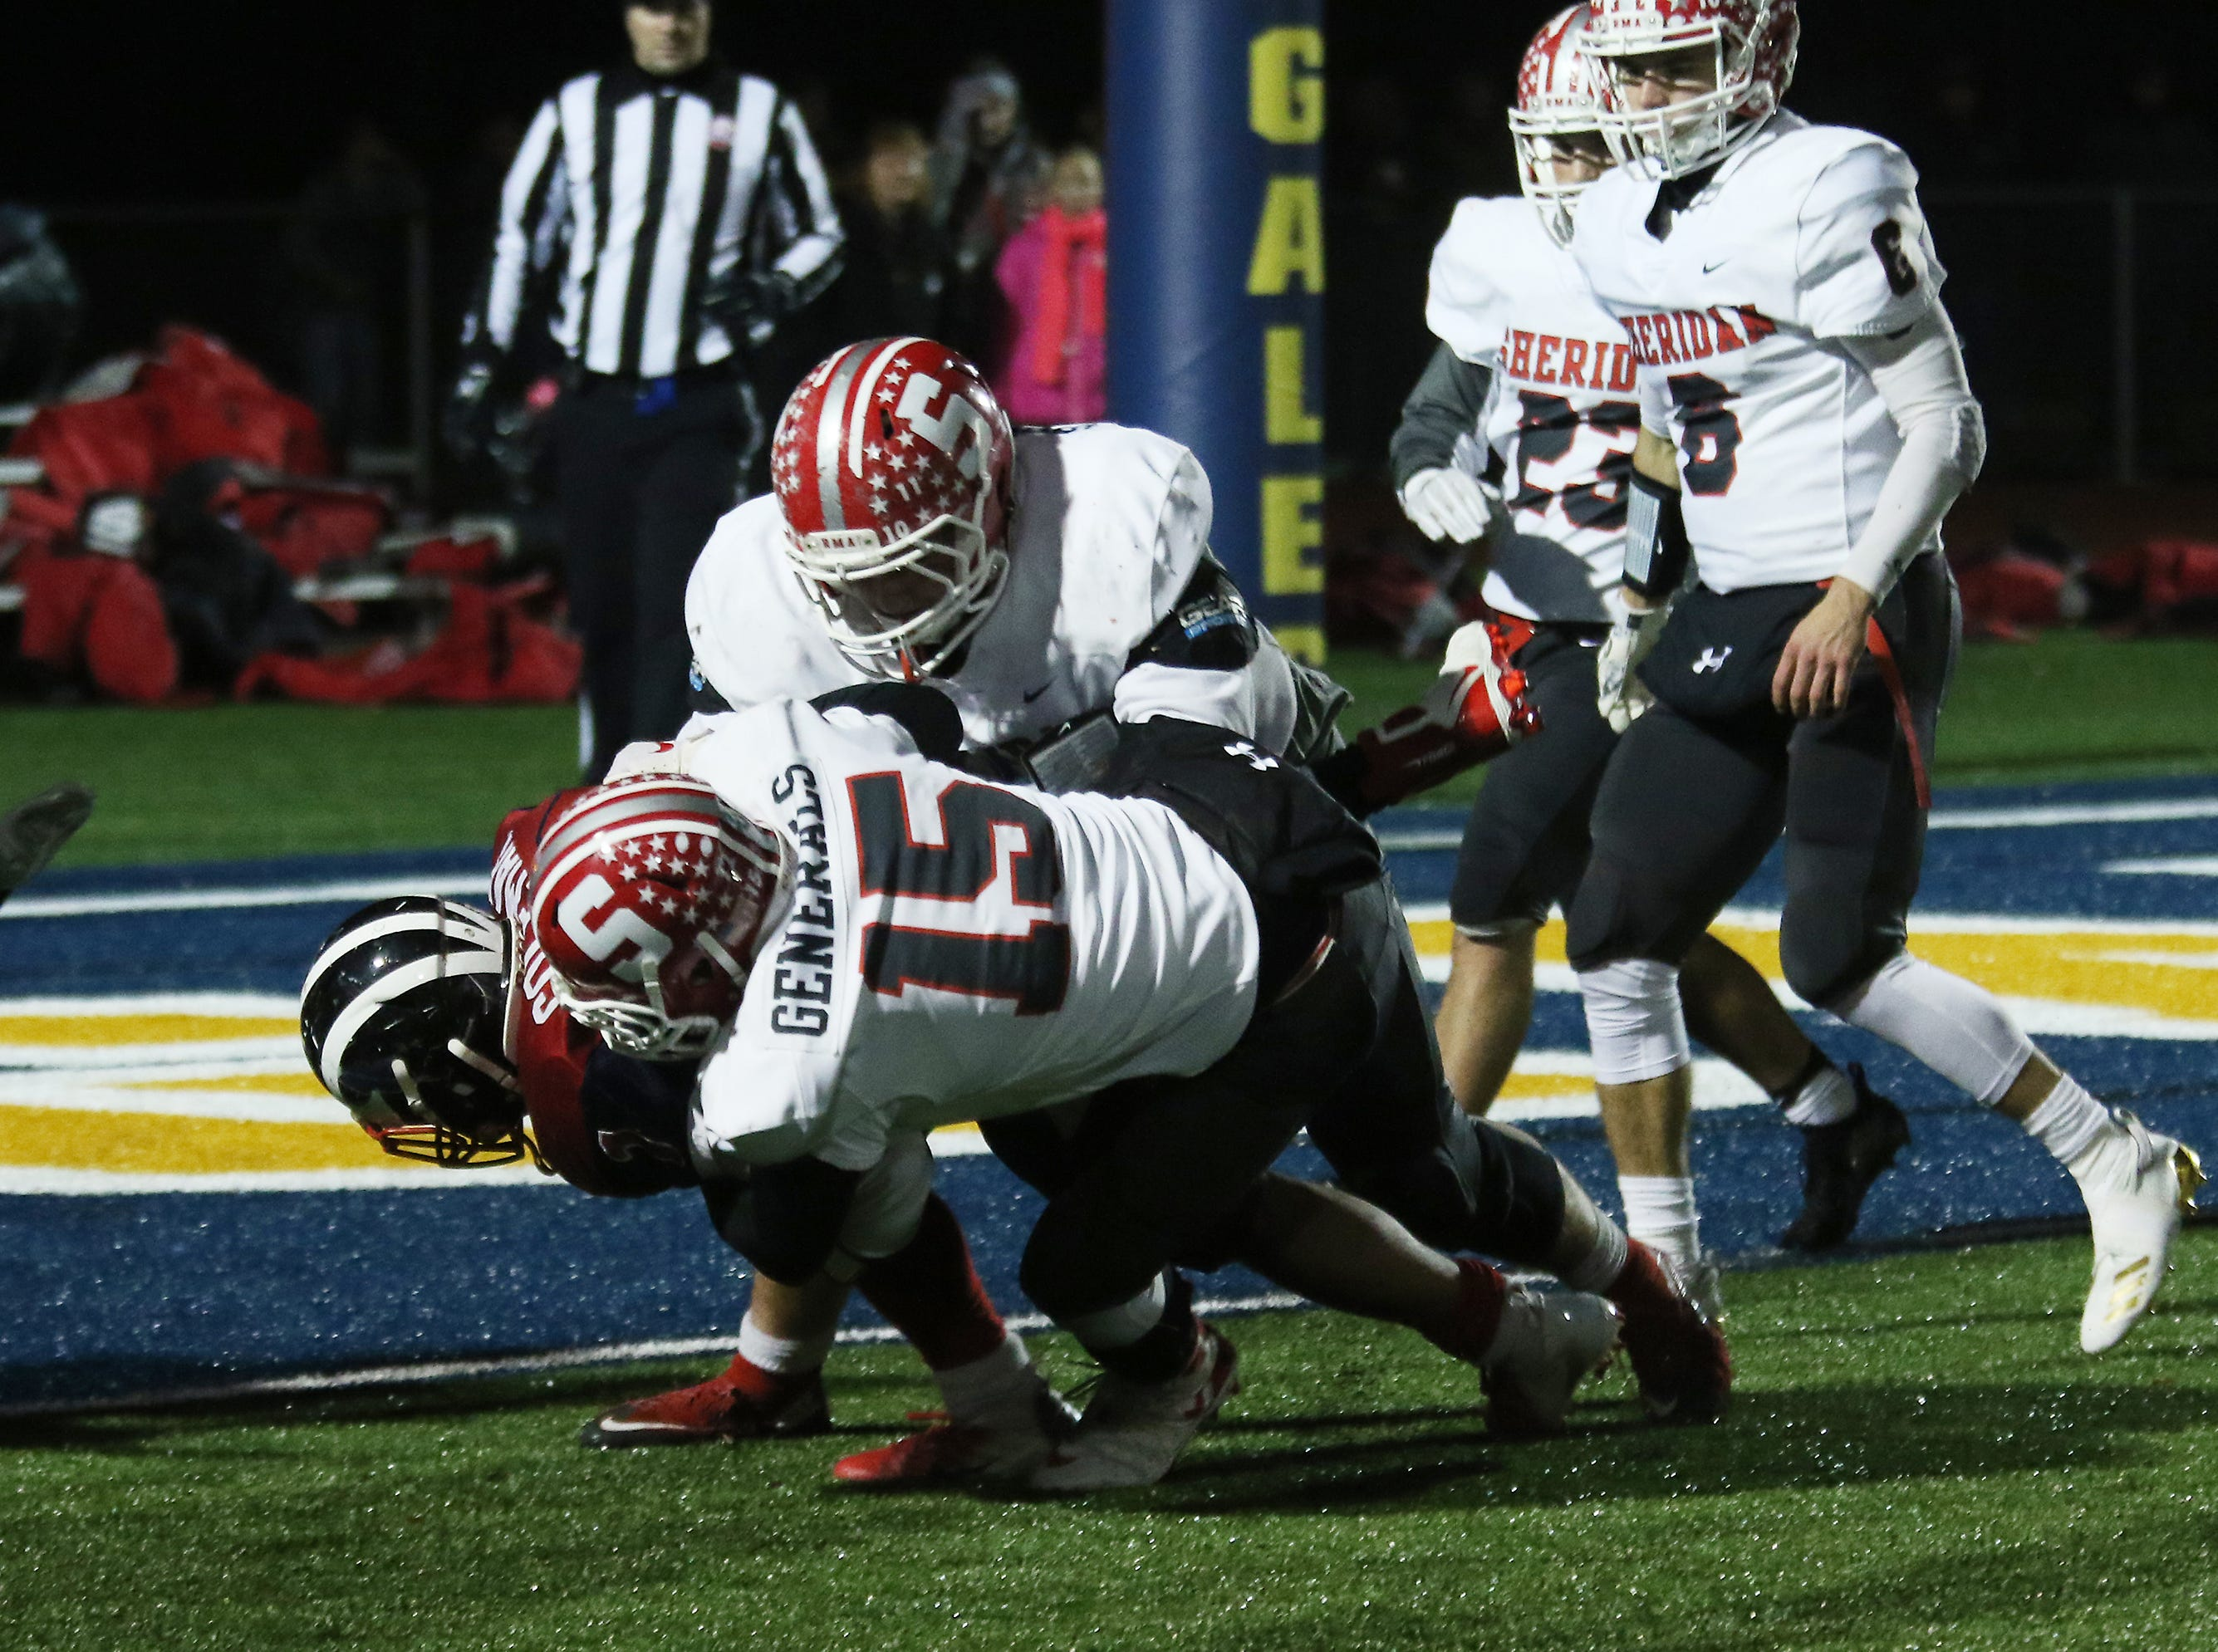 A pair of Sheridan defenders, including Alex Ogle (15) keep an Eastmoor ball carrier out of the endzone.